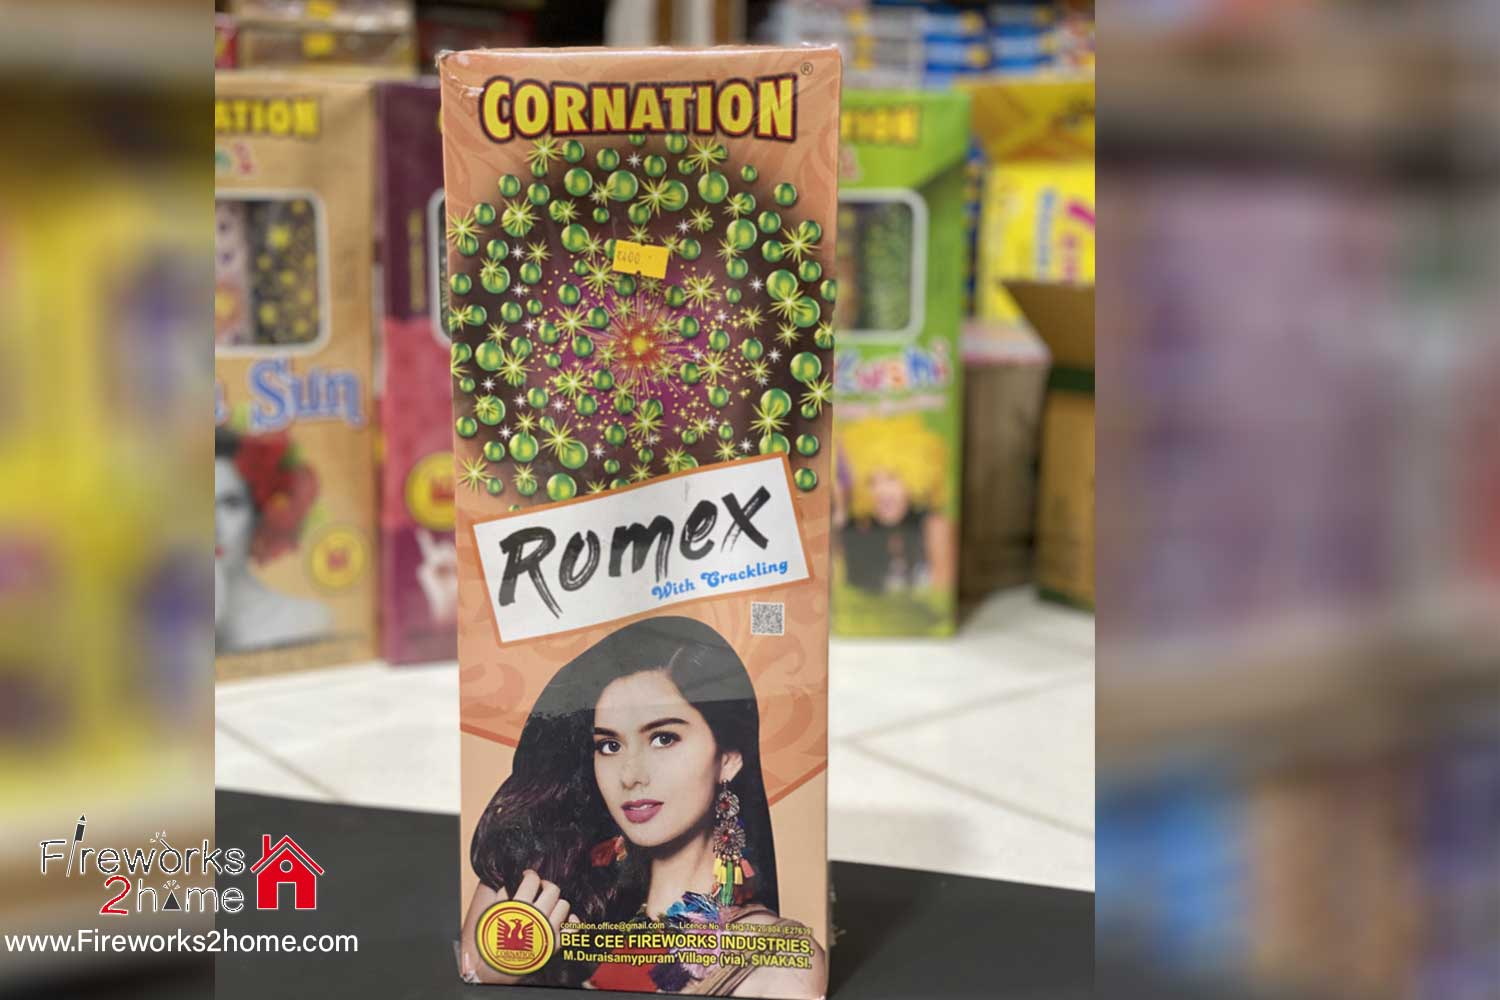 Romex with Crackling by Coronation